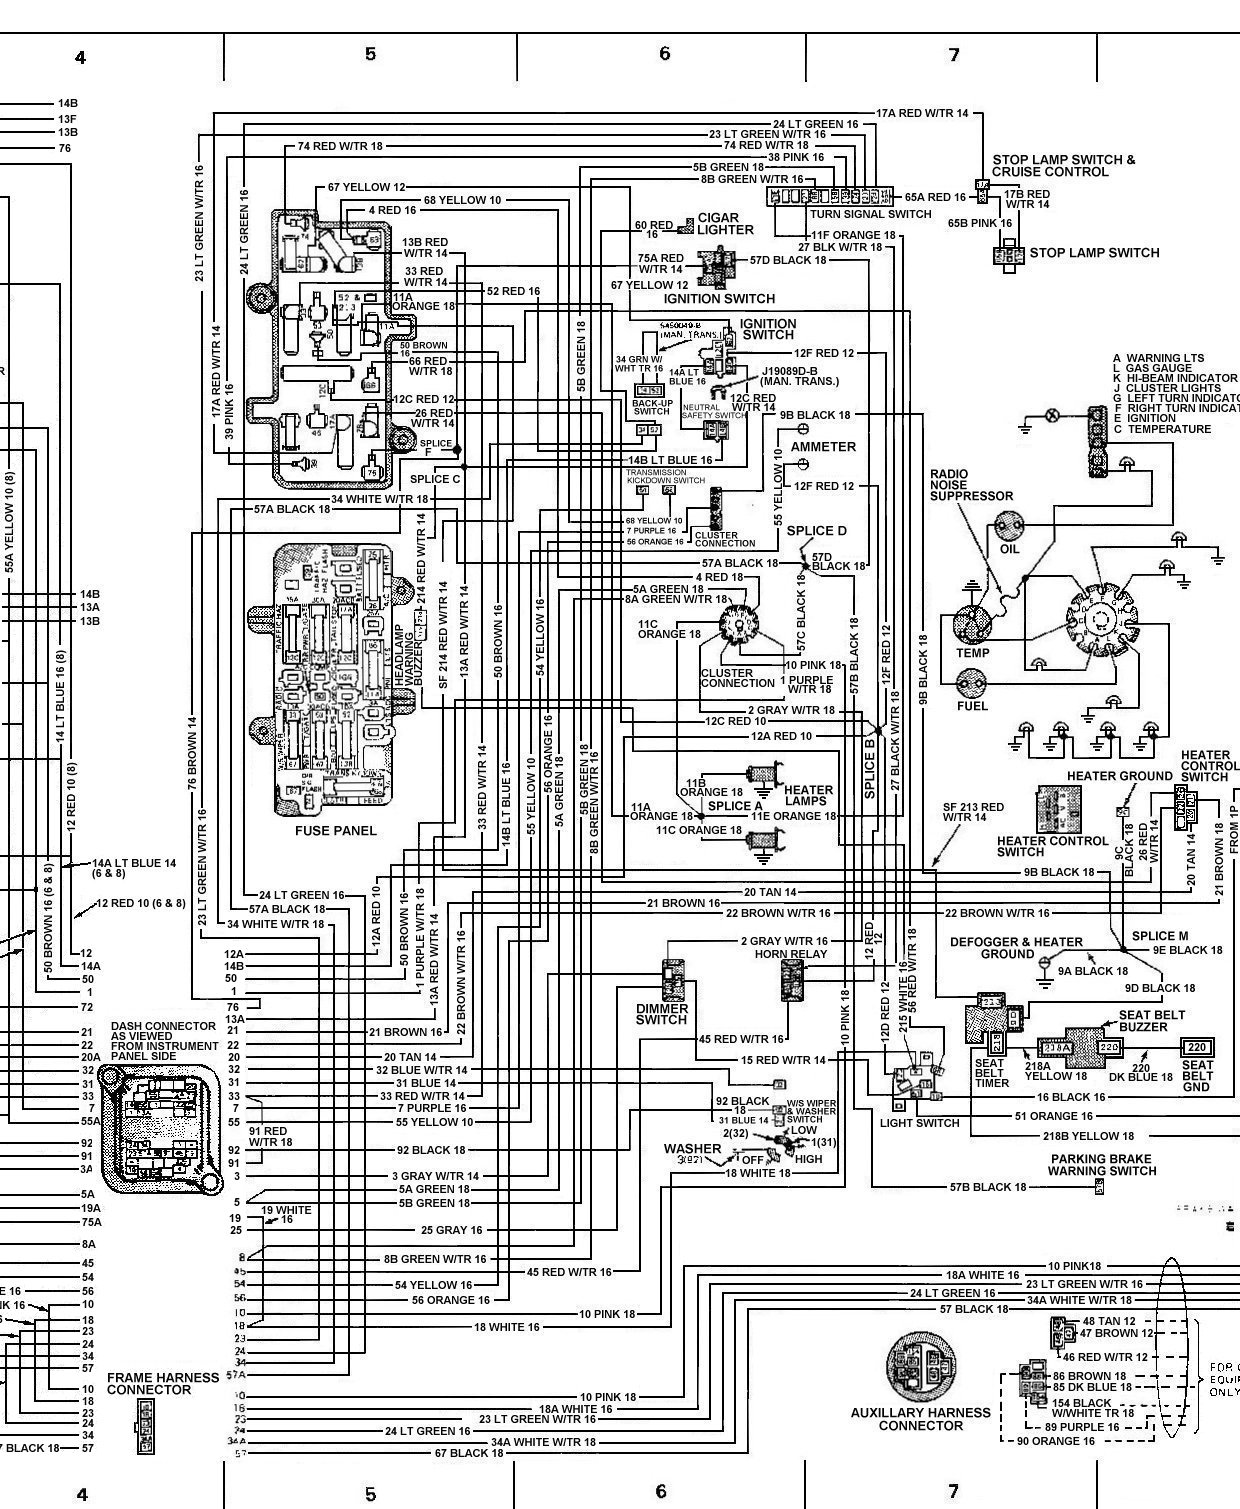 1g Dsm Wiring Diagram Free Download E30 Ecu Latest Bmw Dishwasher Whirlpool Engine At